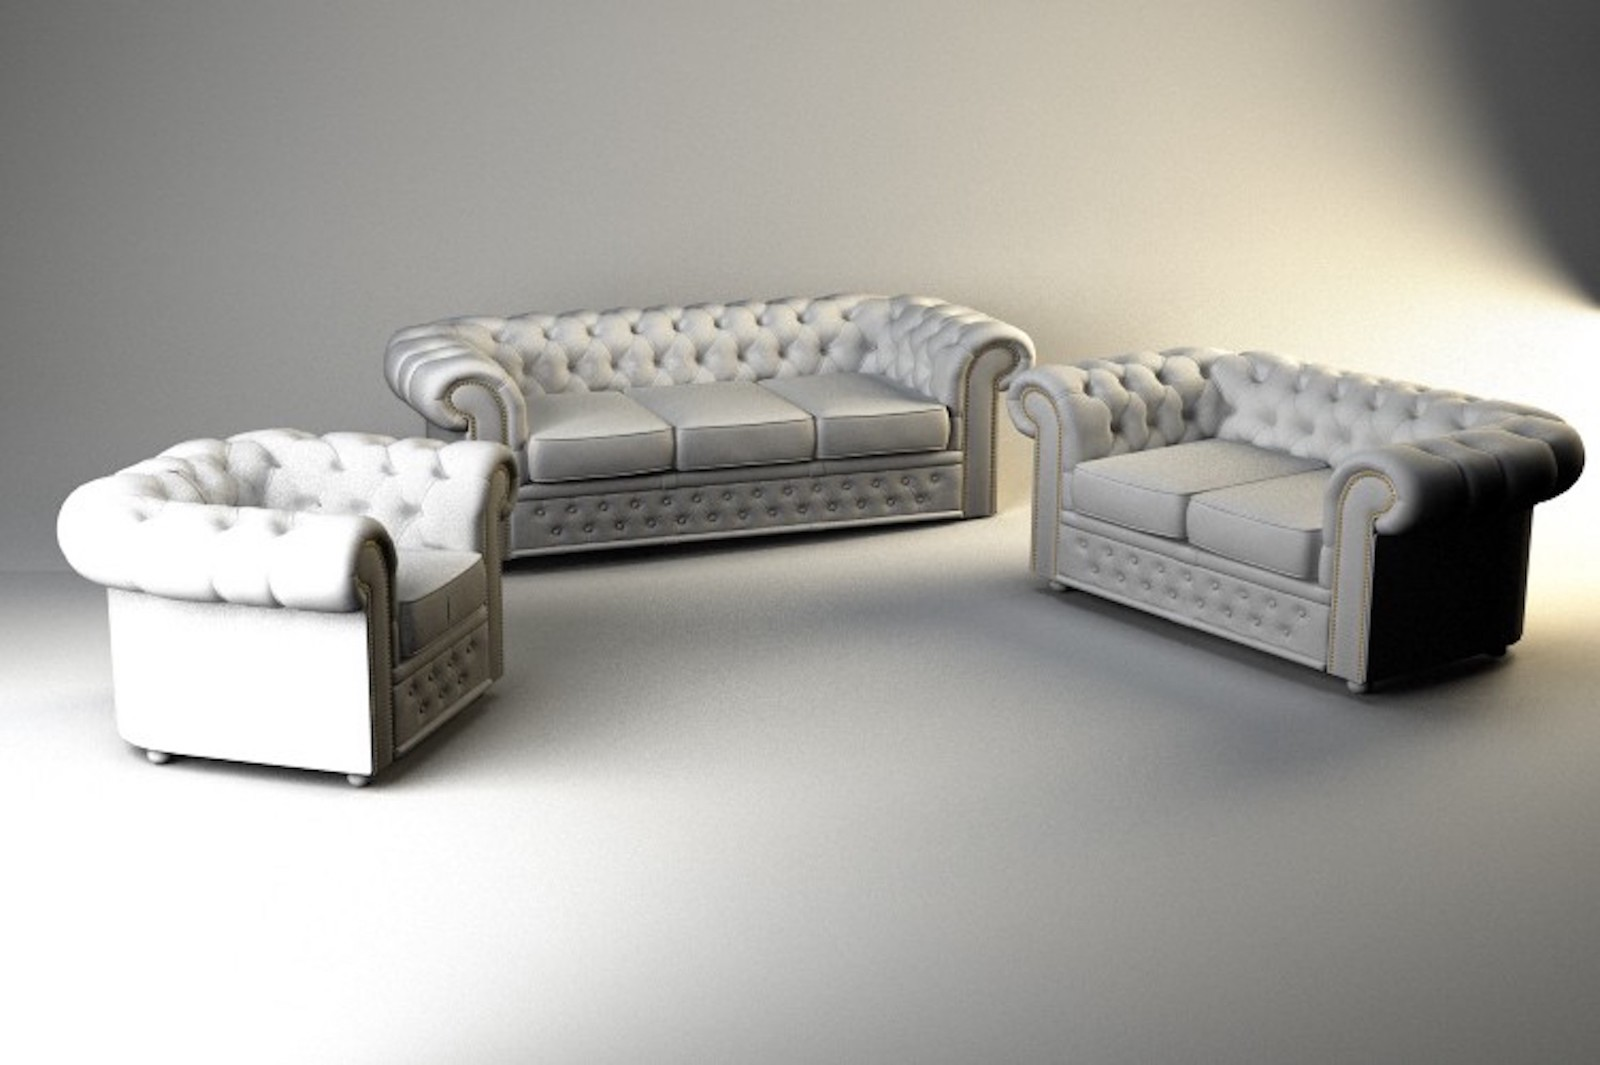 Chesterfield Sofa Texture Chesterfield Modelli Download C4dzone